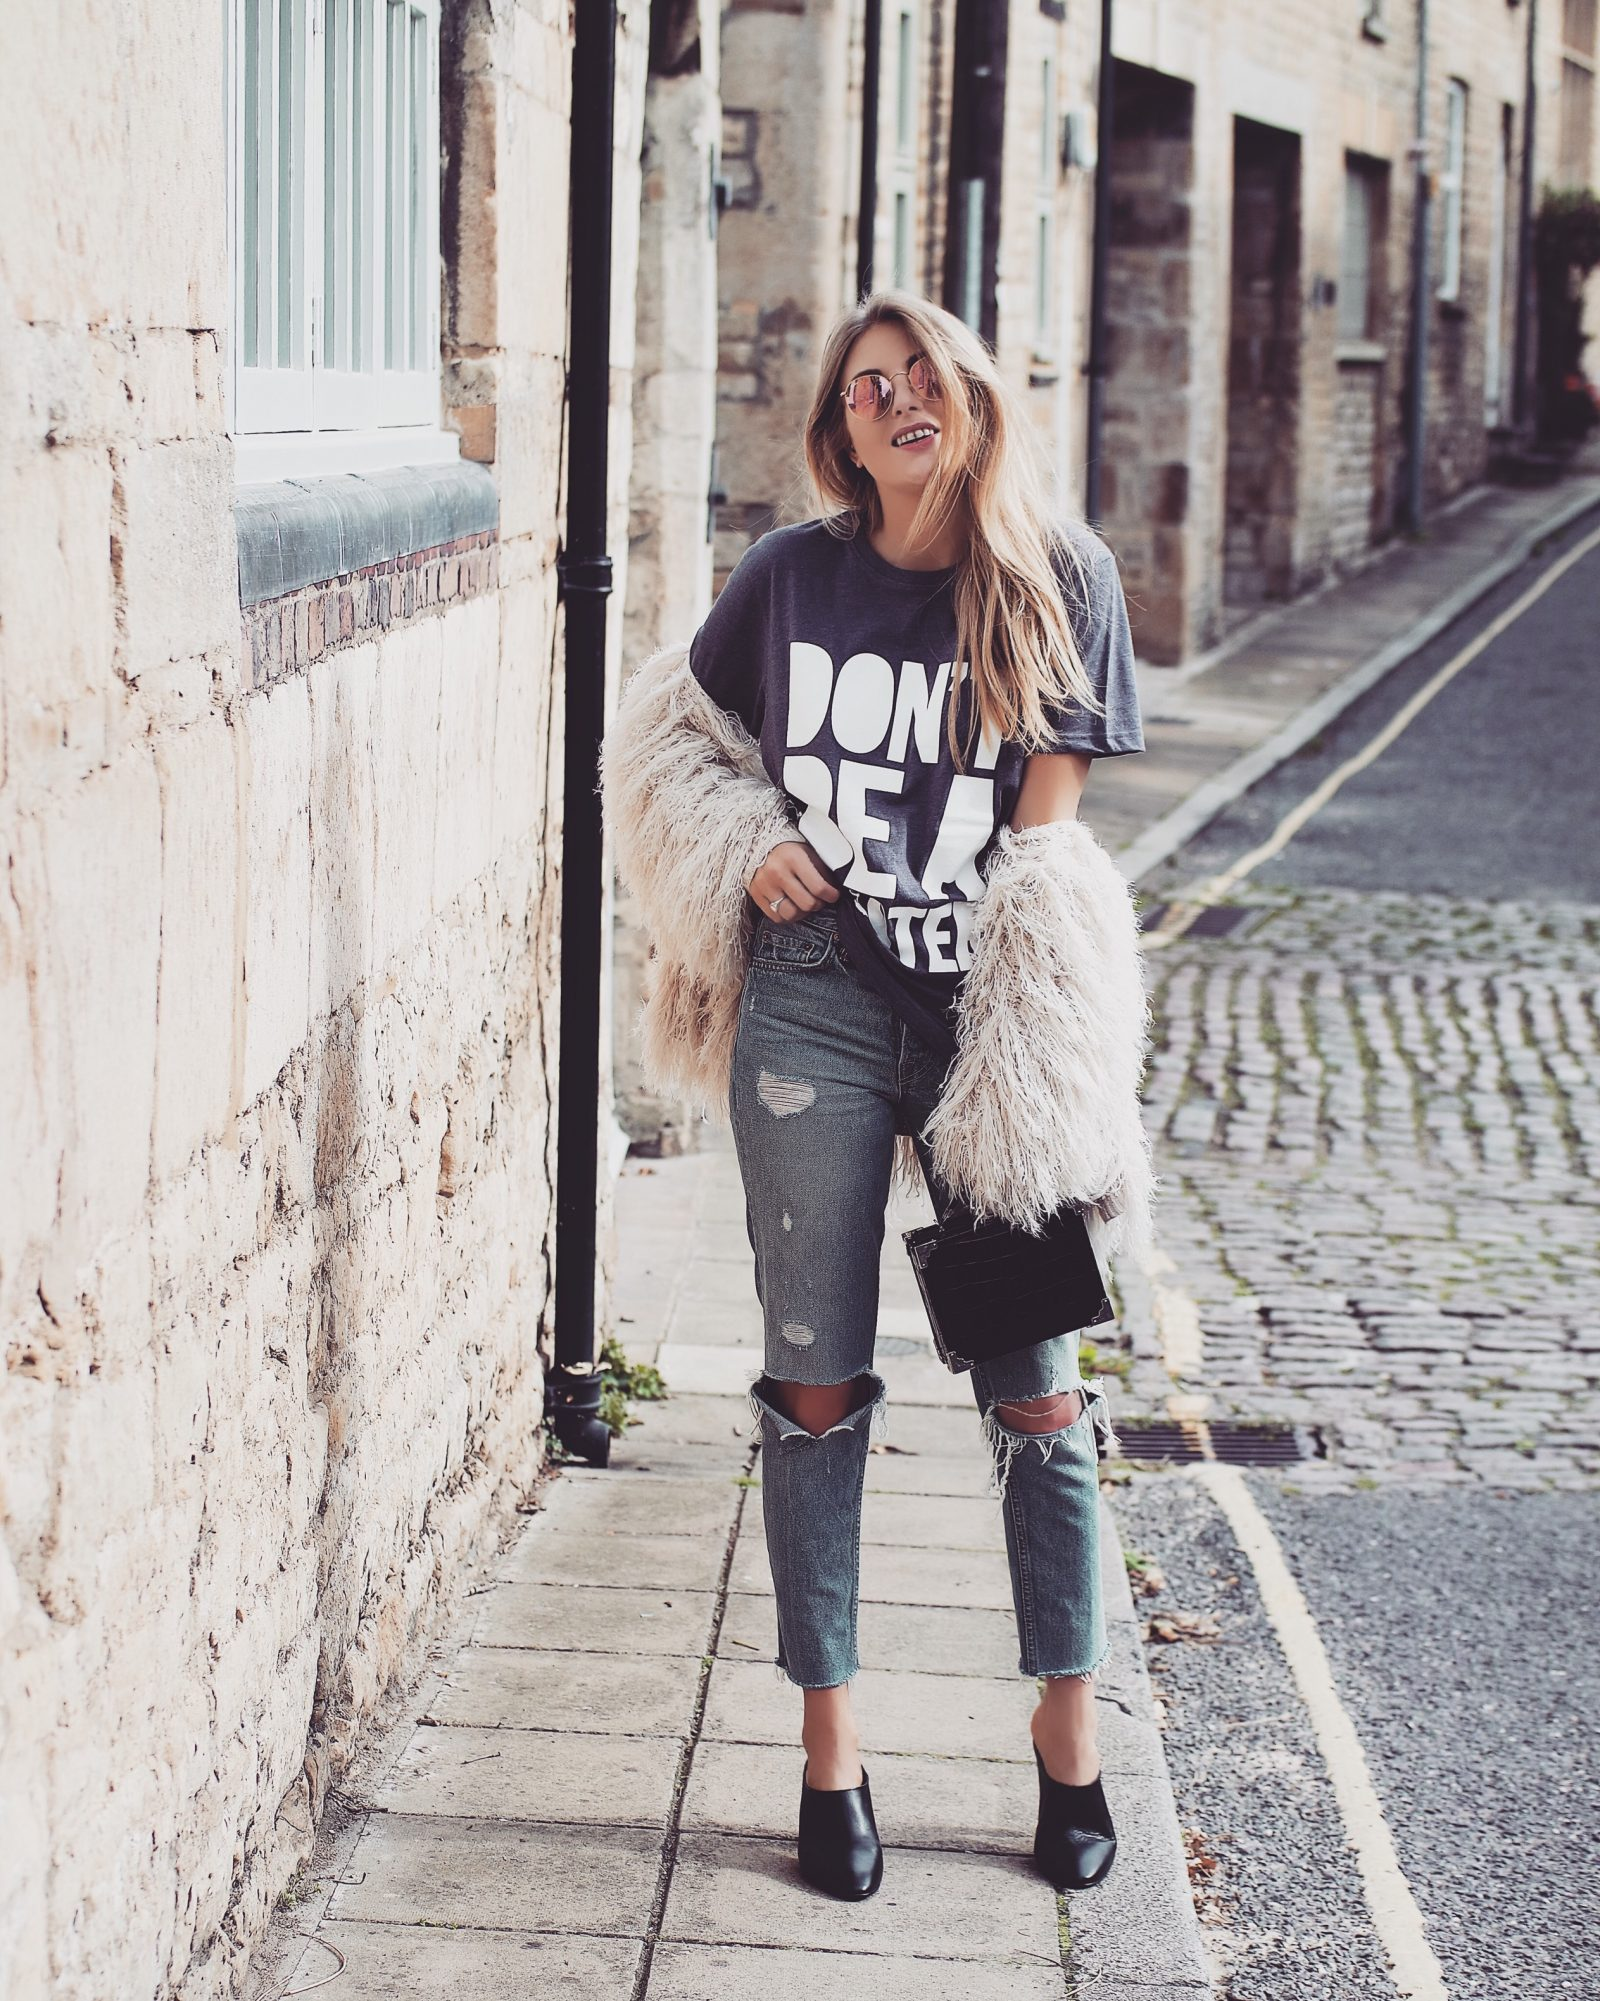 Swap For Good - Henry Holland - Street Style